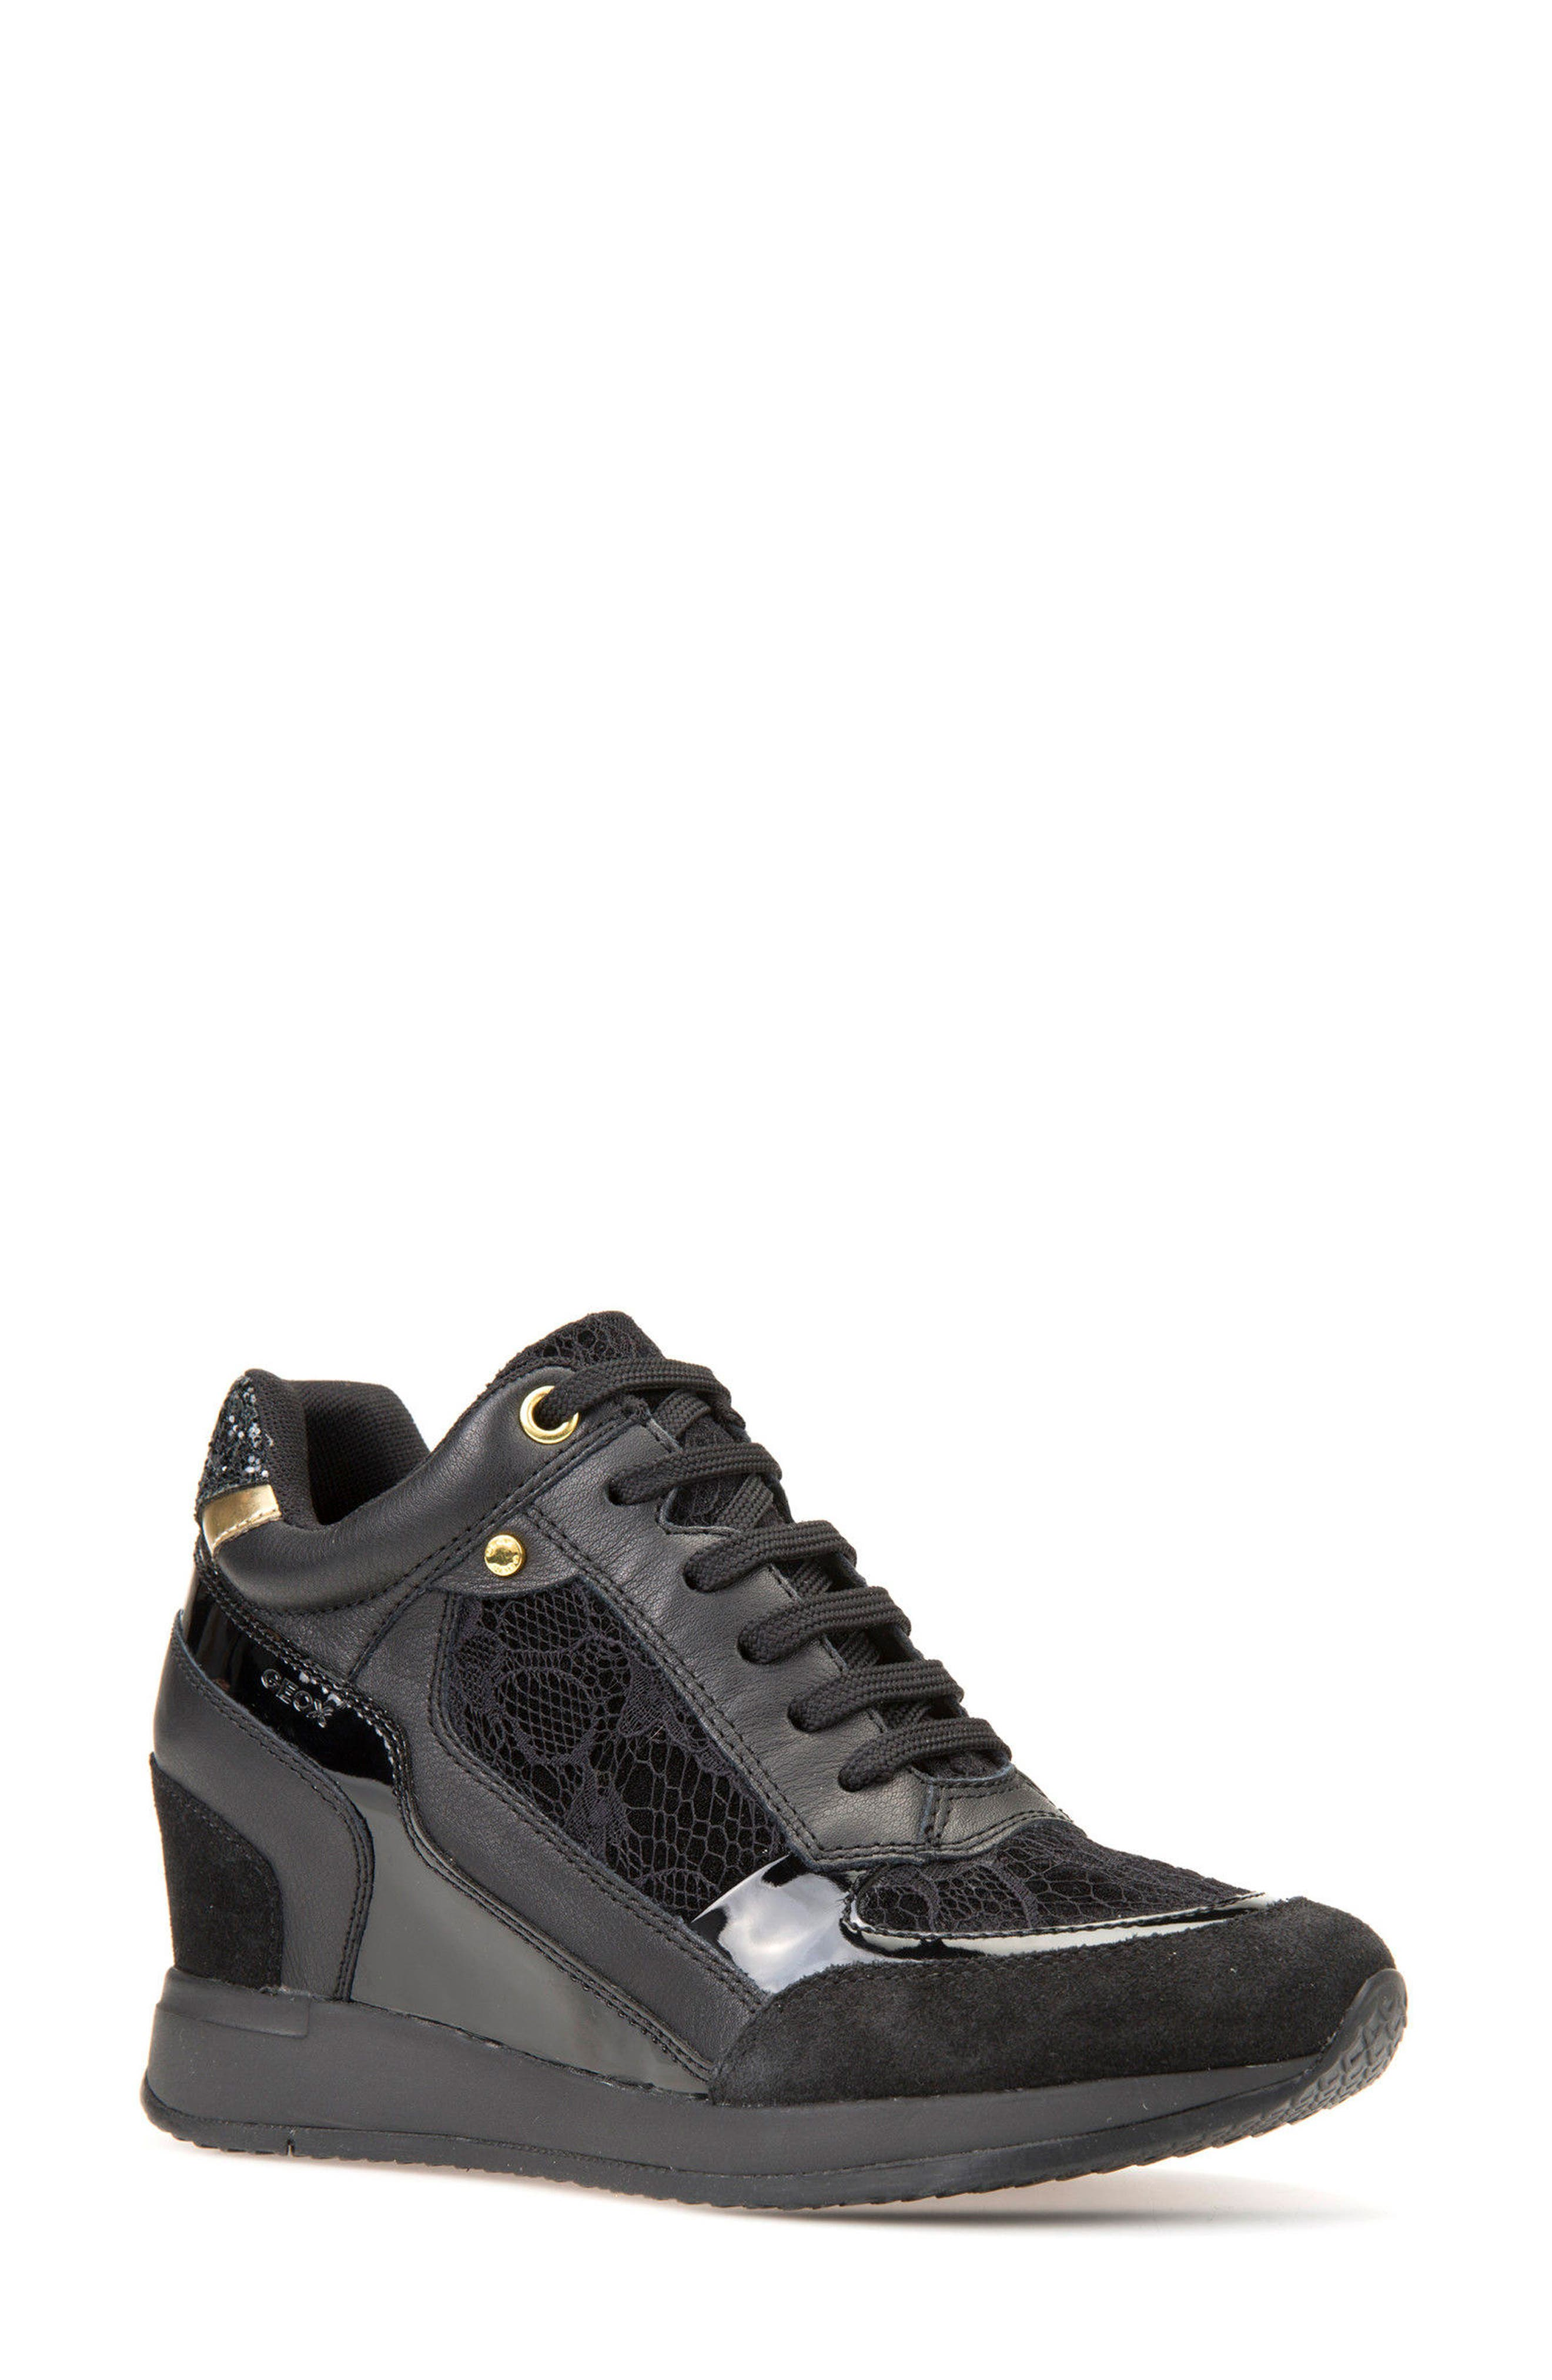 Nydame Wedge Sneaker,                             Main thumbnail 1, color,                             001